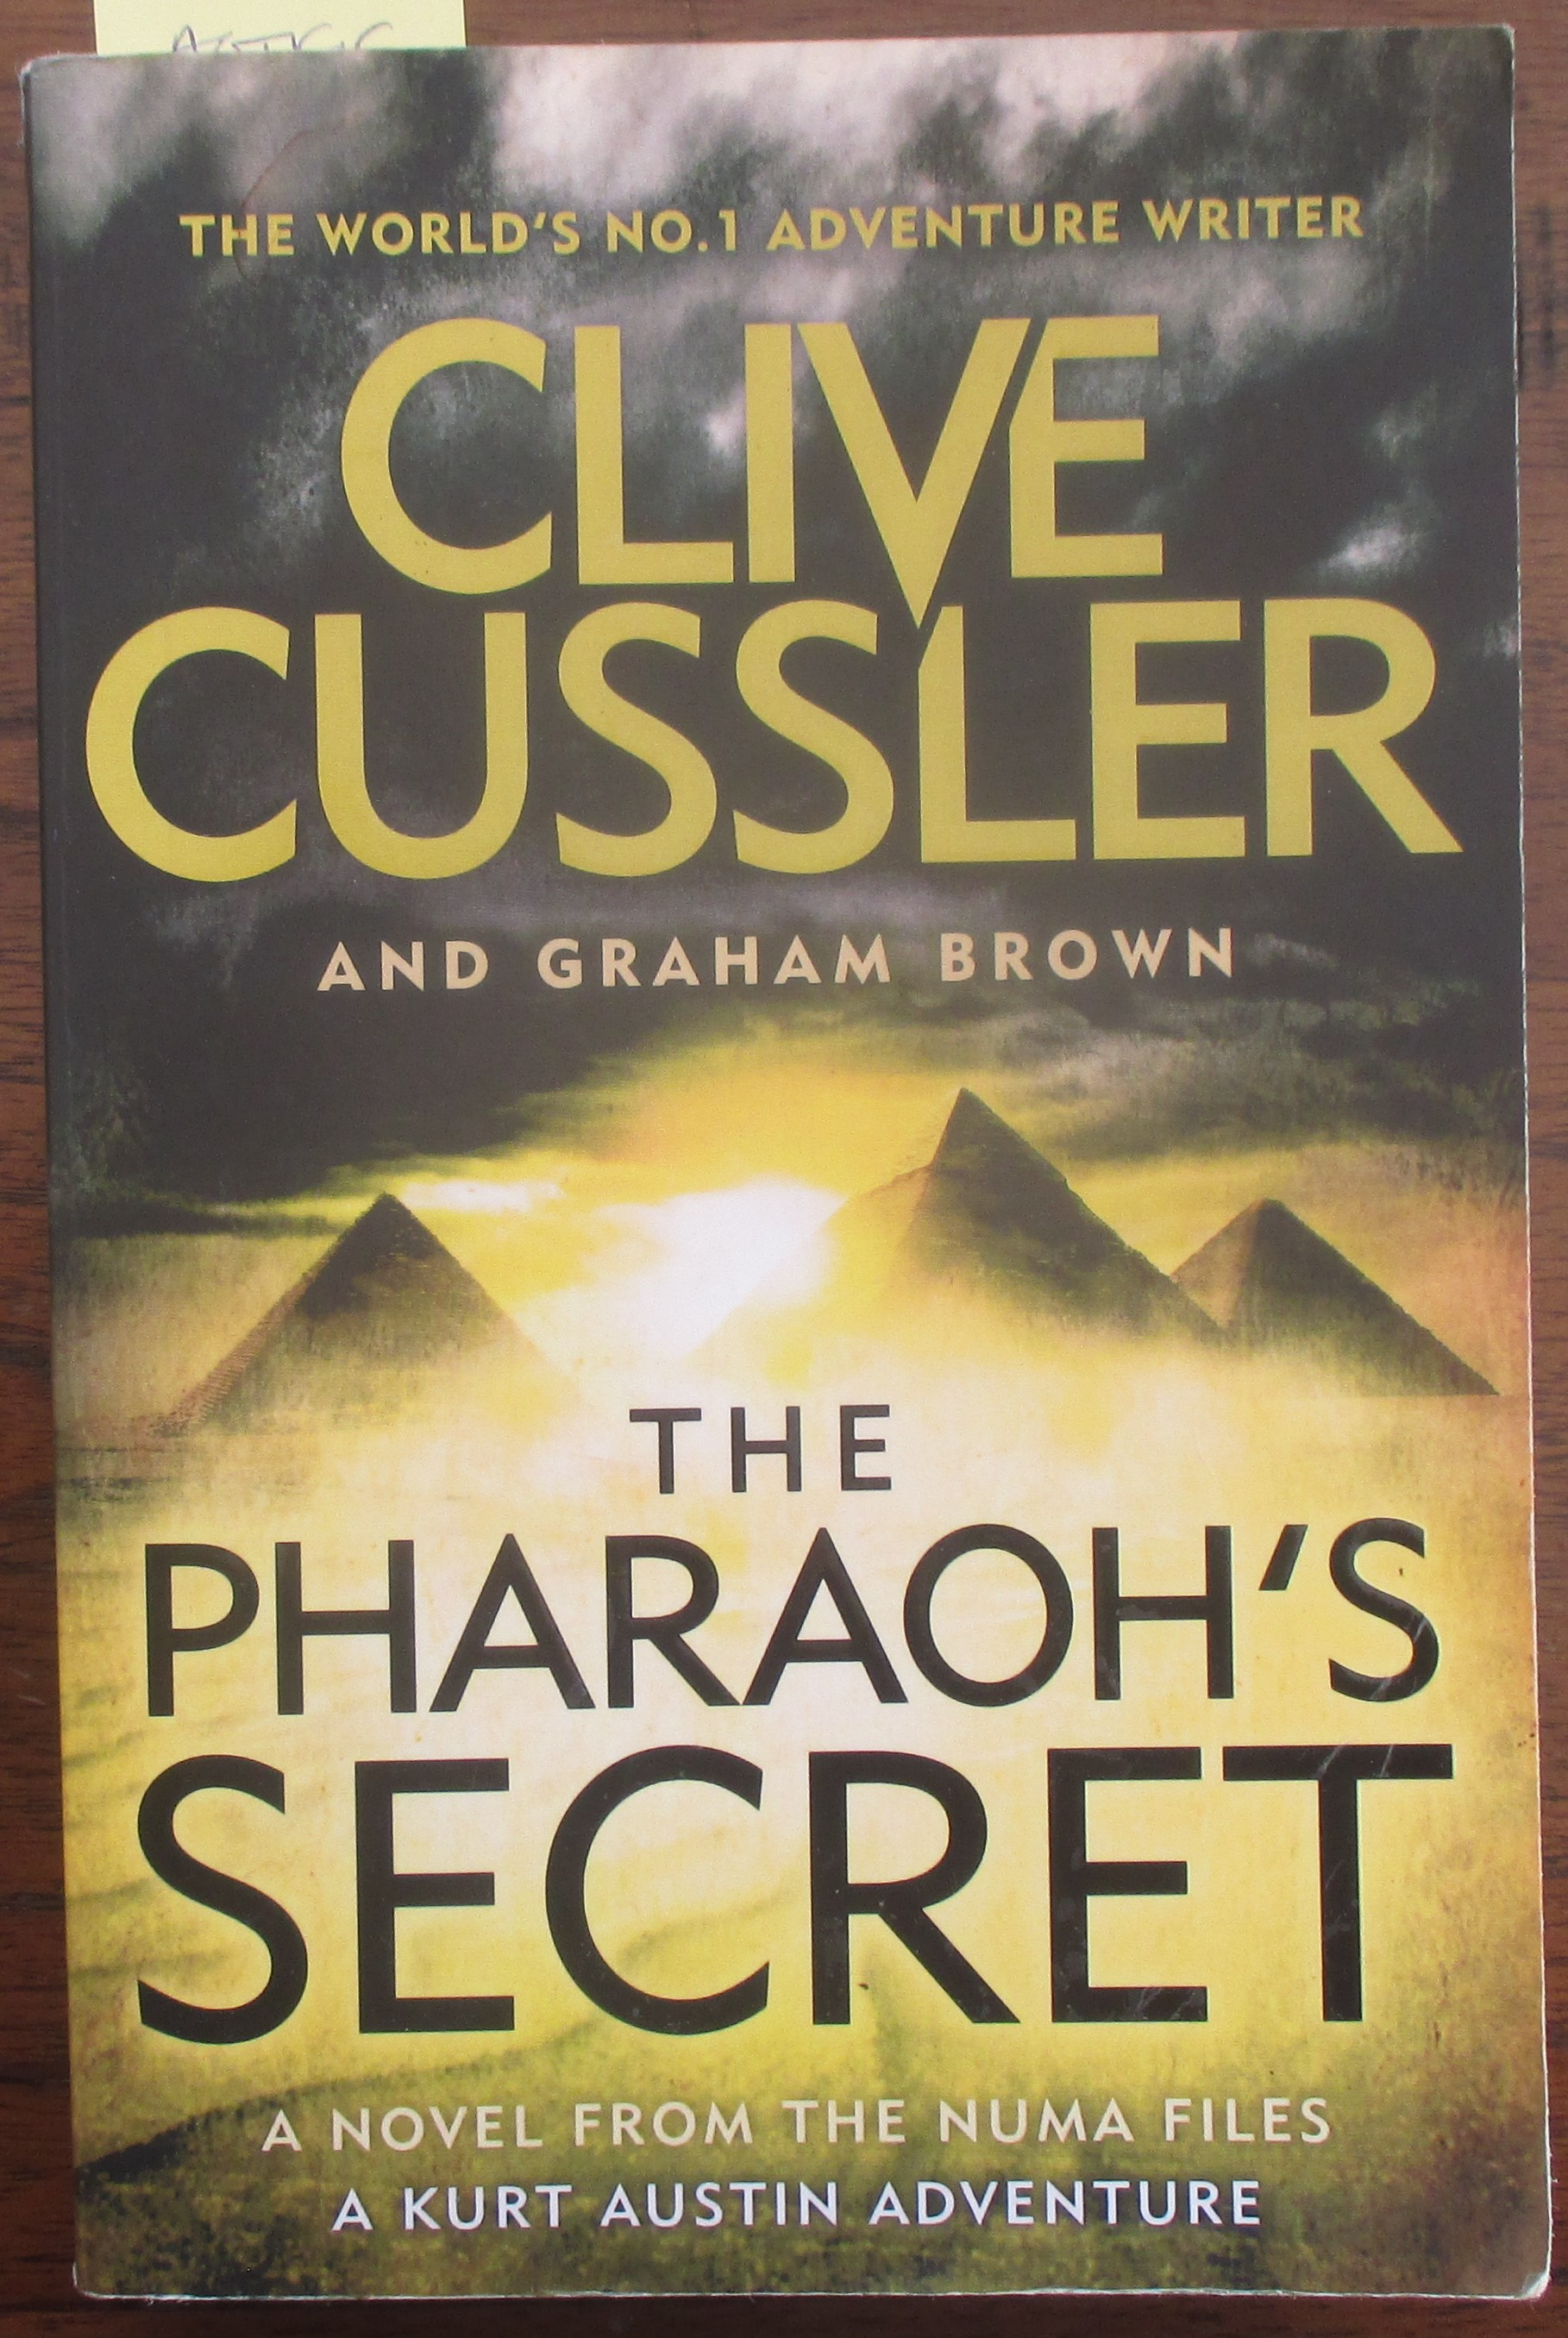 Image for Pharaoh's Secret, The